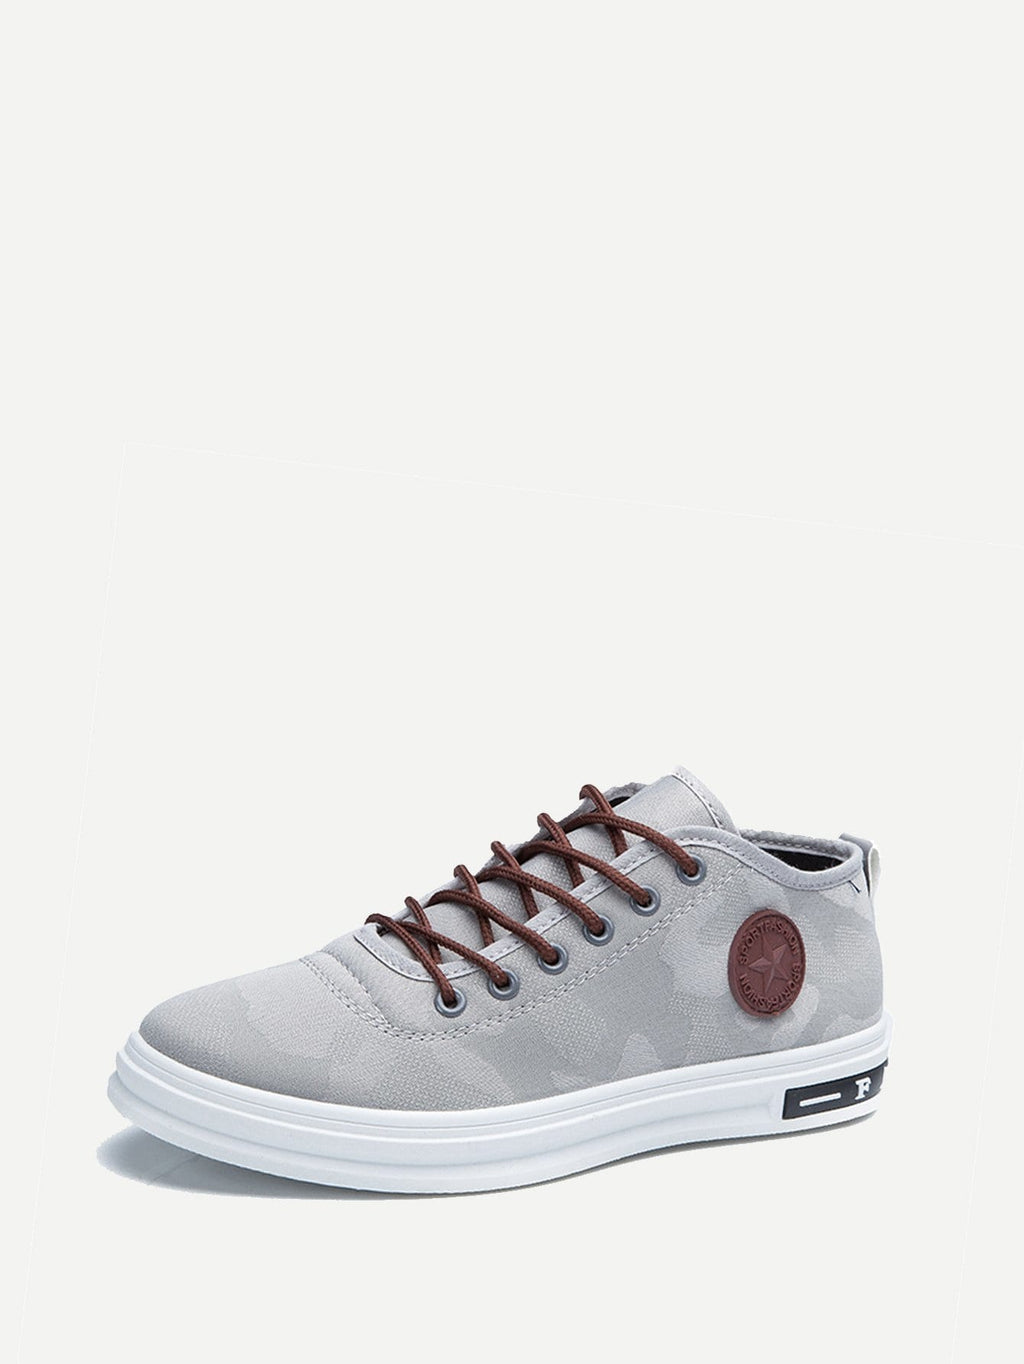 Running Shoes For Men - Lace Up PU Sneakers